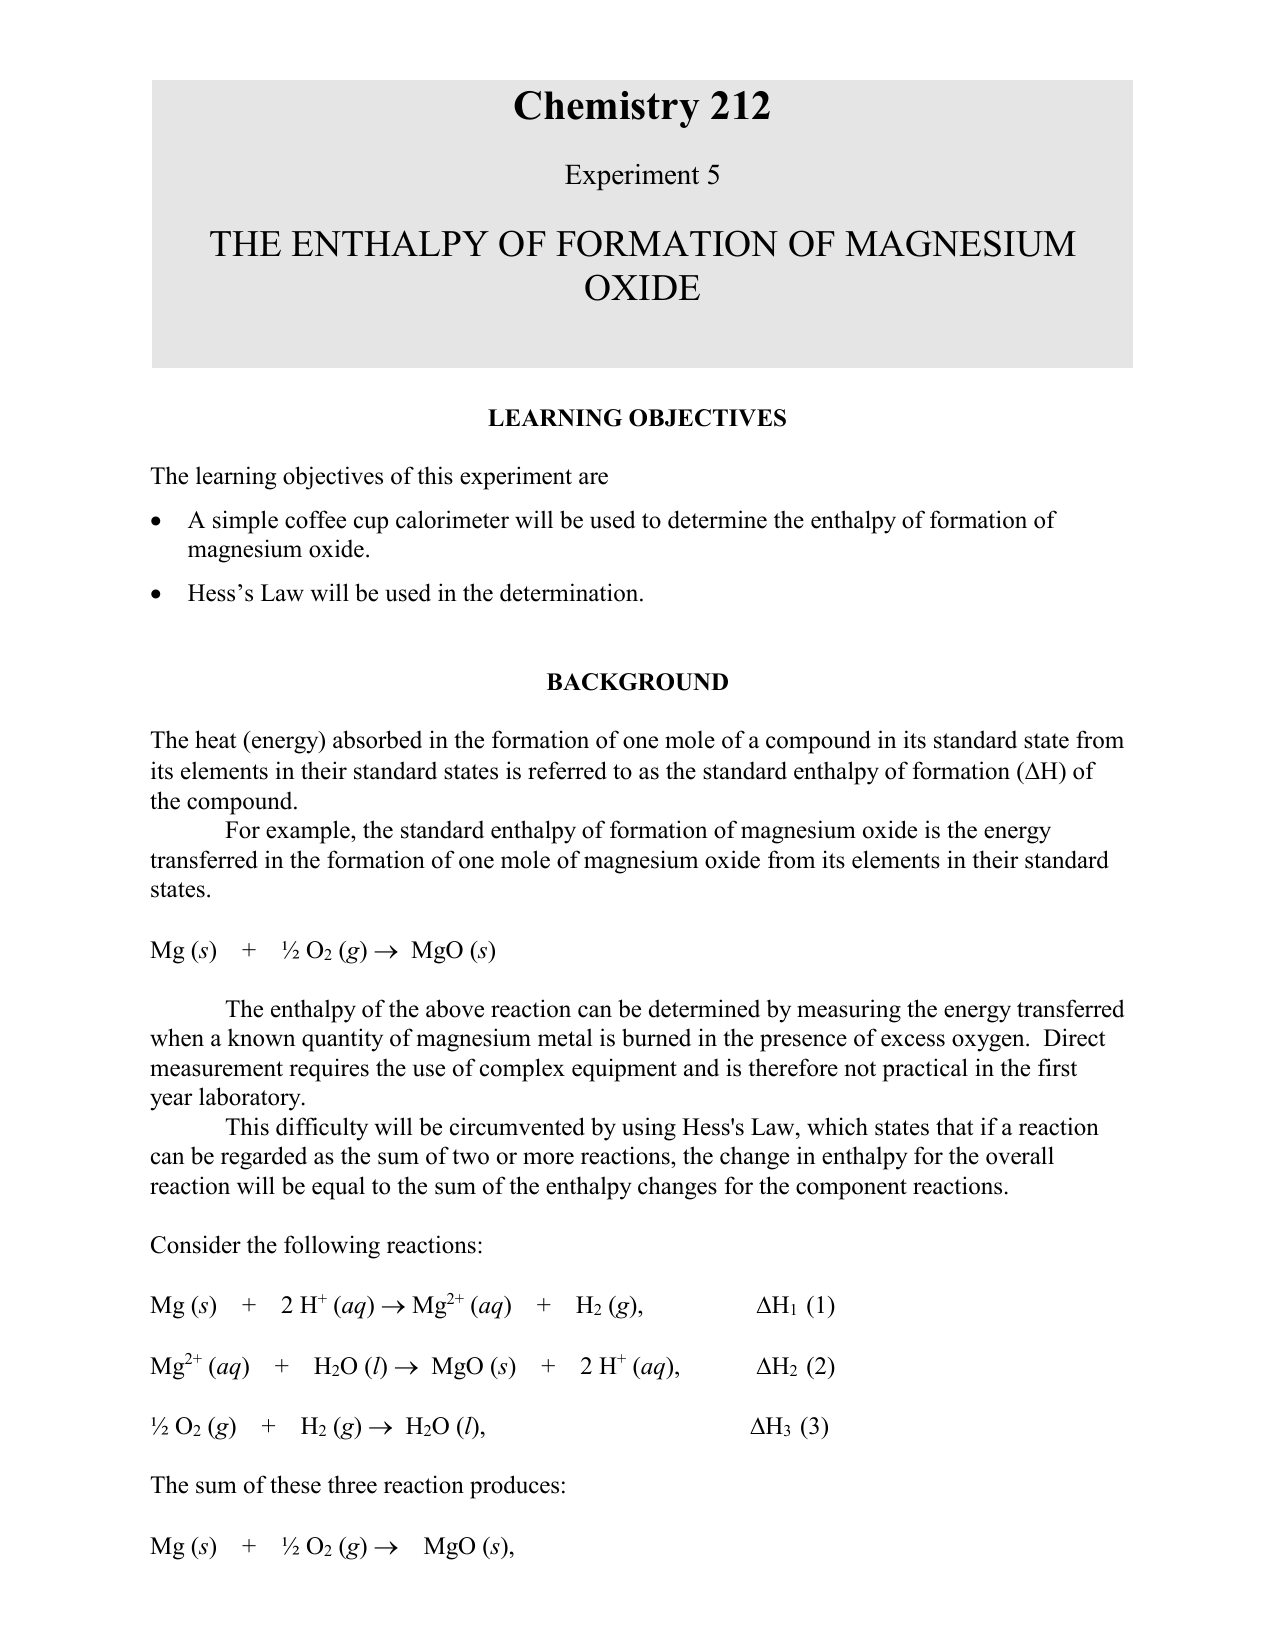 standard enthalpy of formation mgo